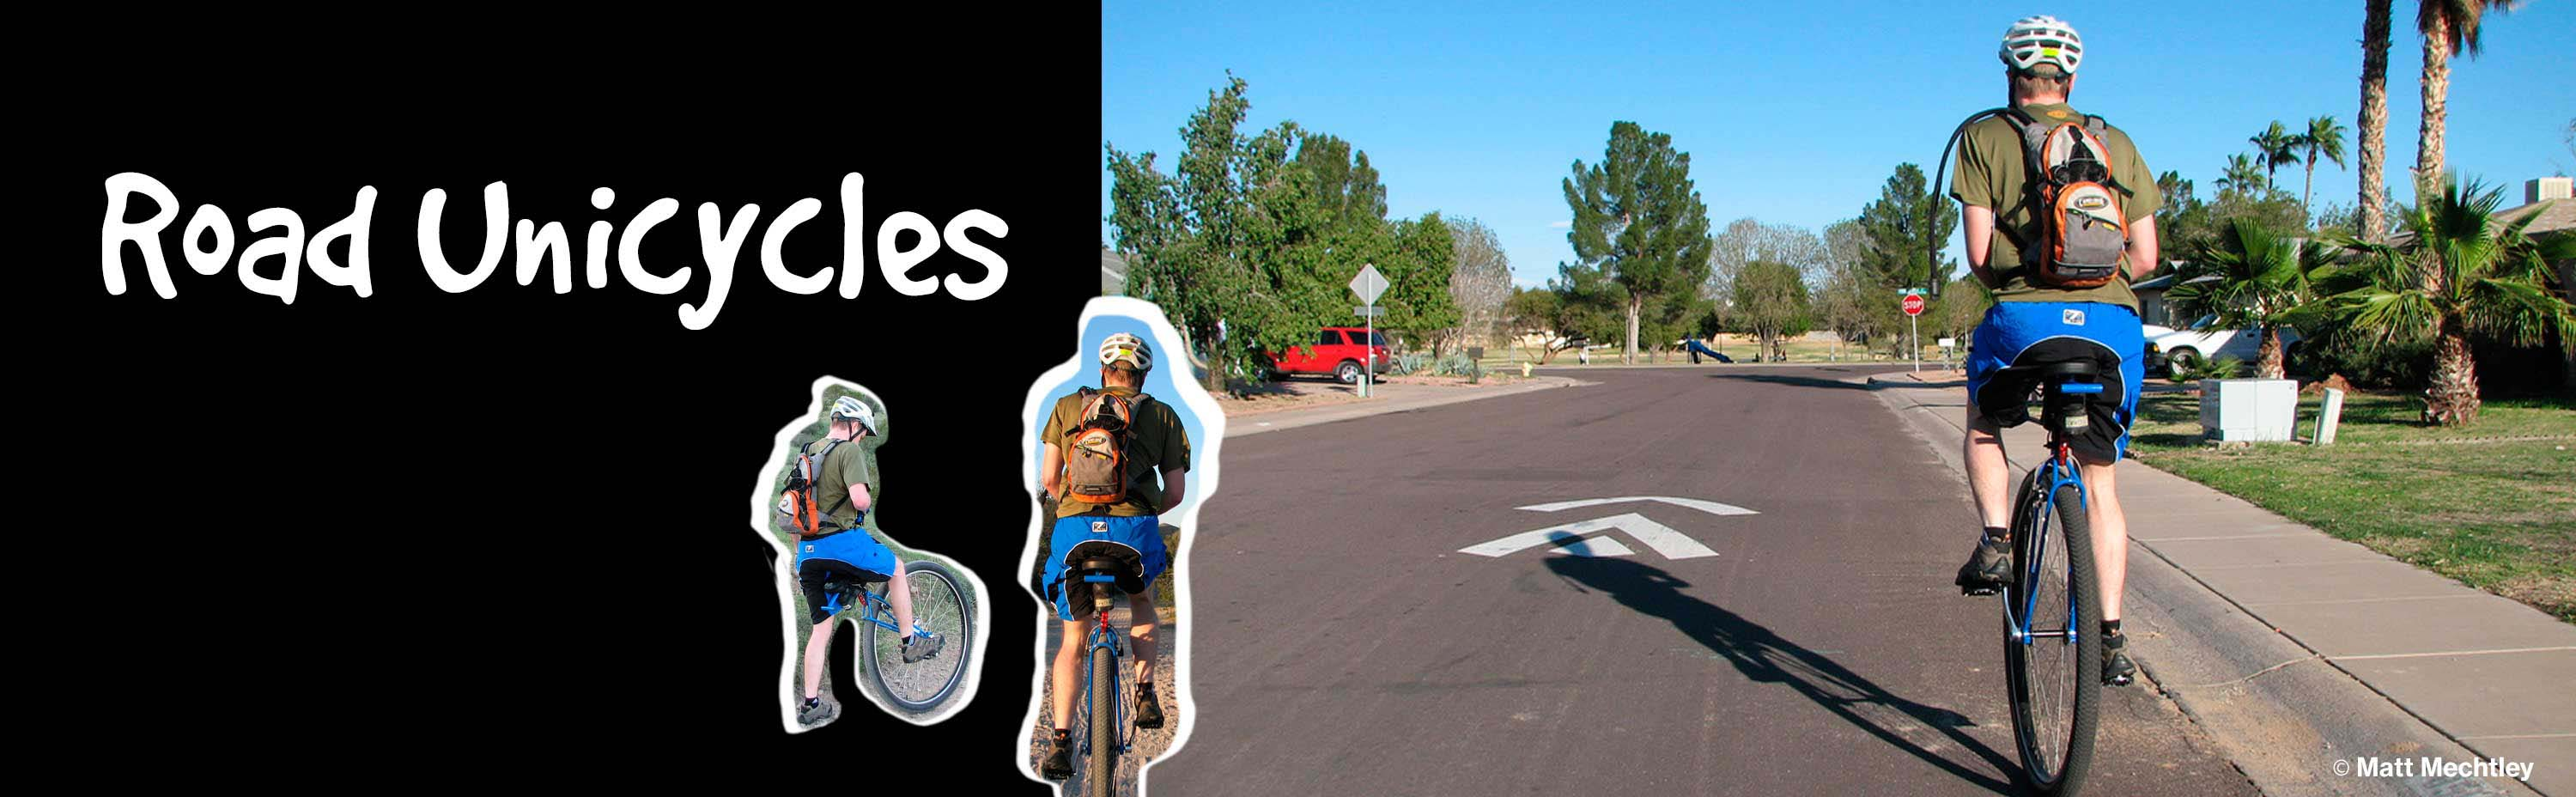 Road Unicycles